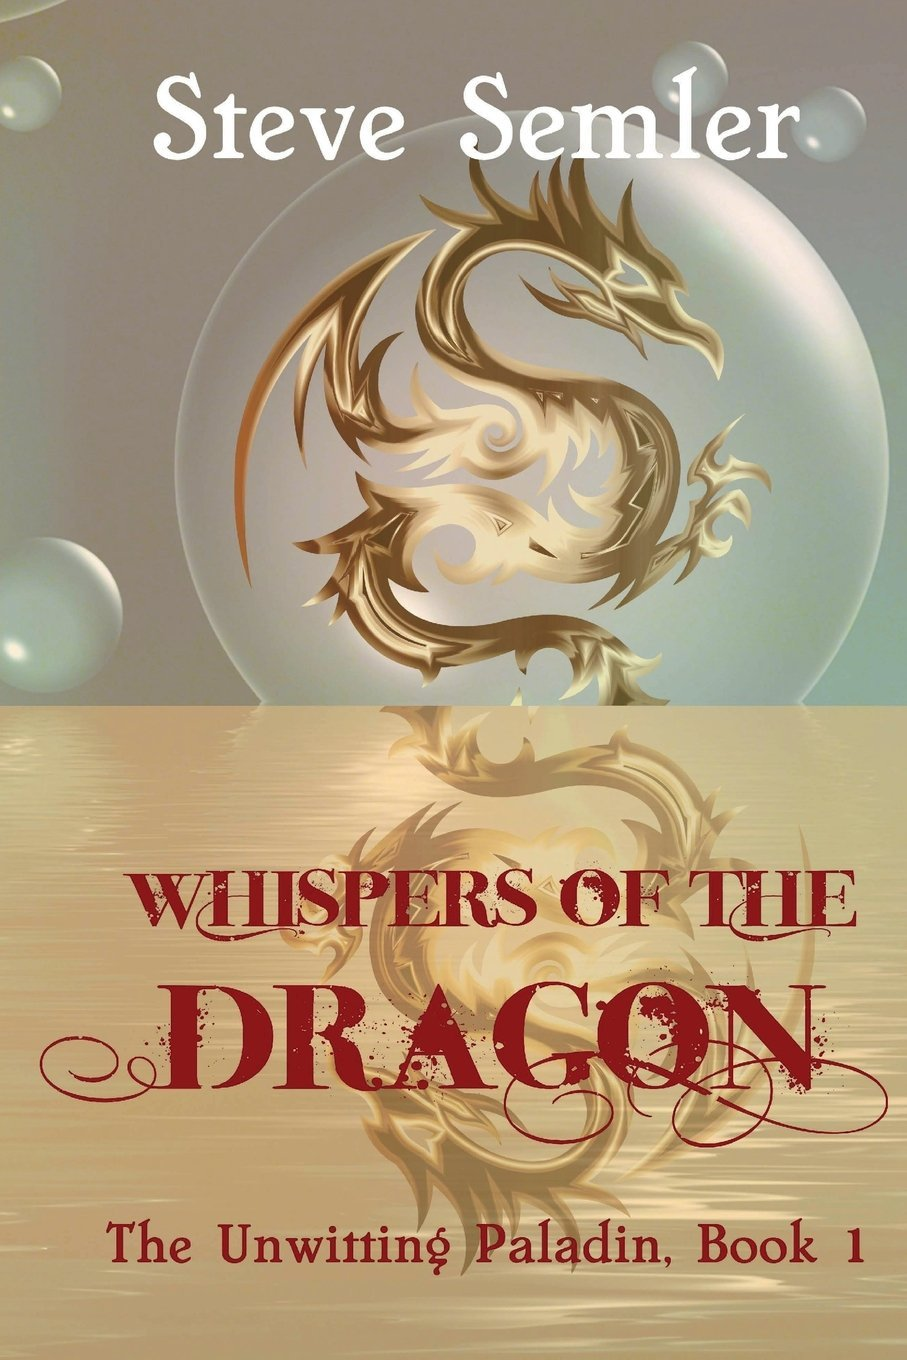 Download Whispers of the Dragon (The Unwitting Paladin) (Volume 1) ebook